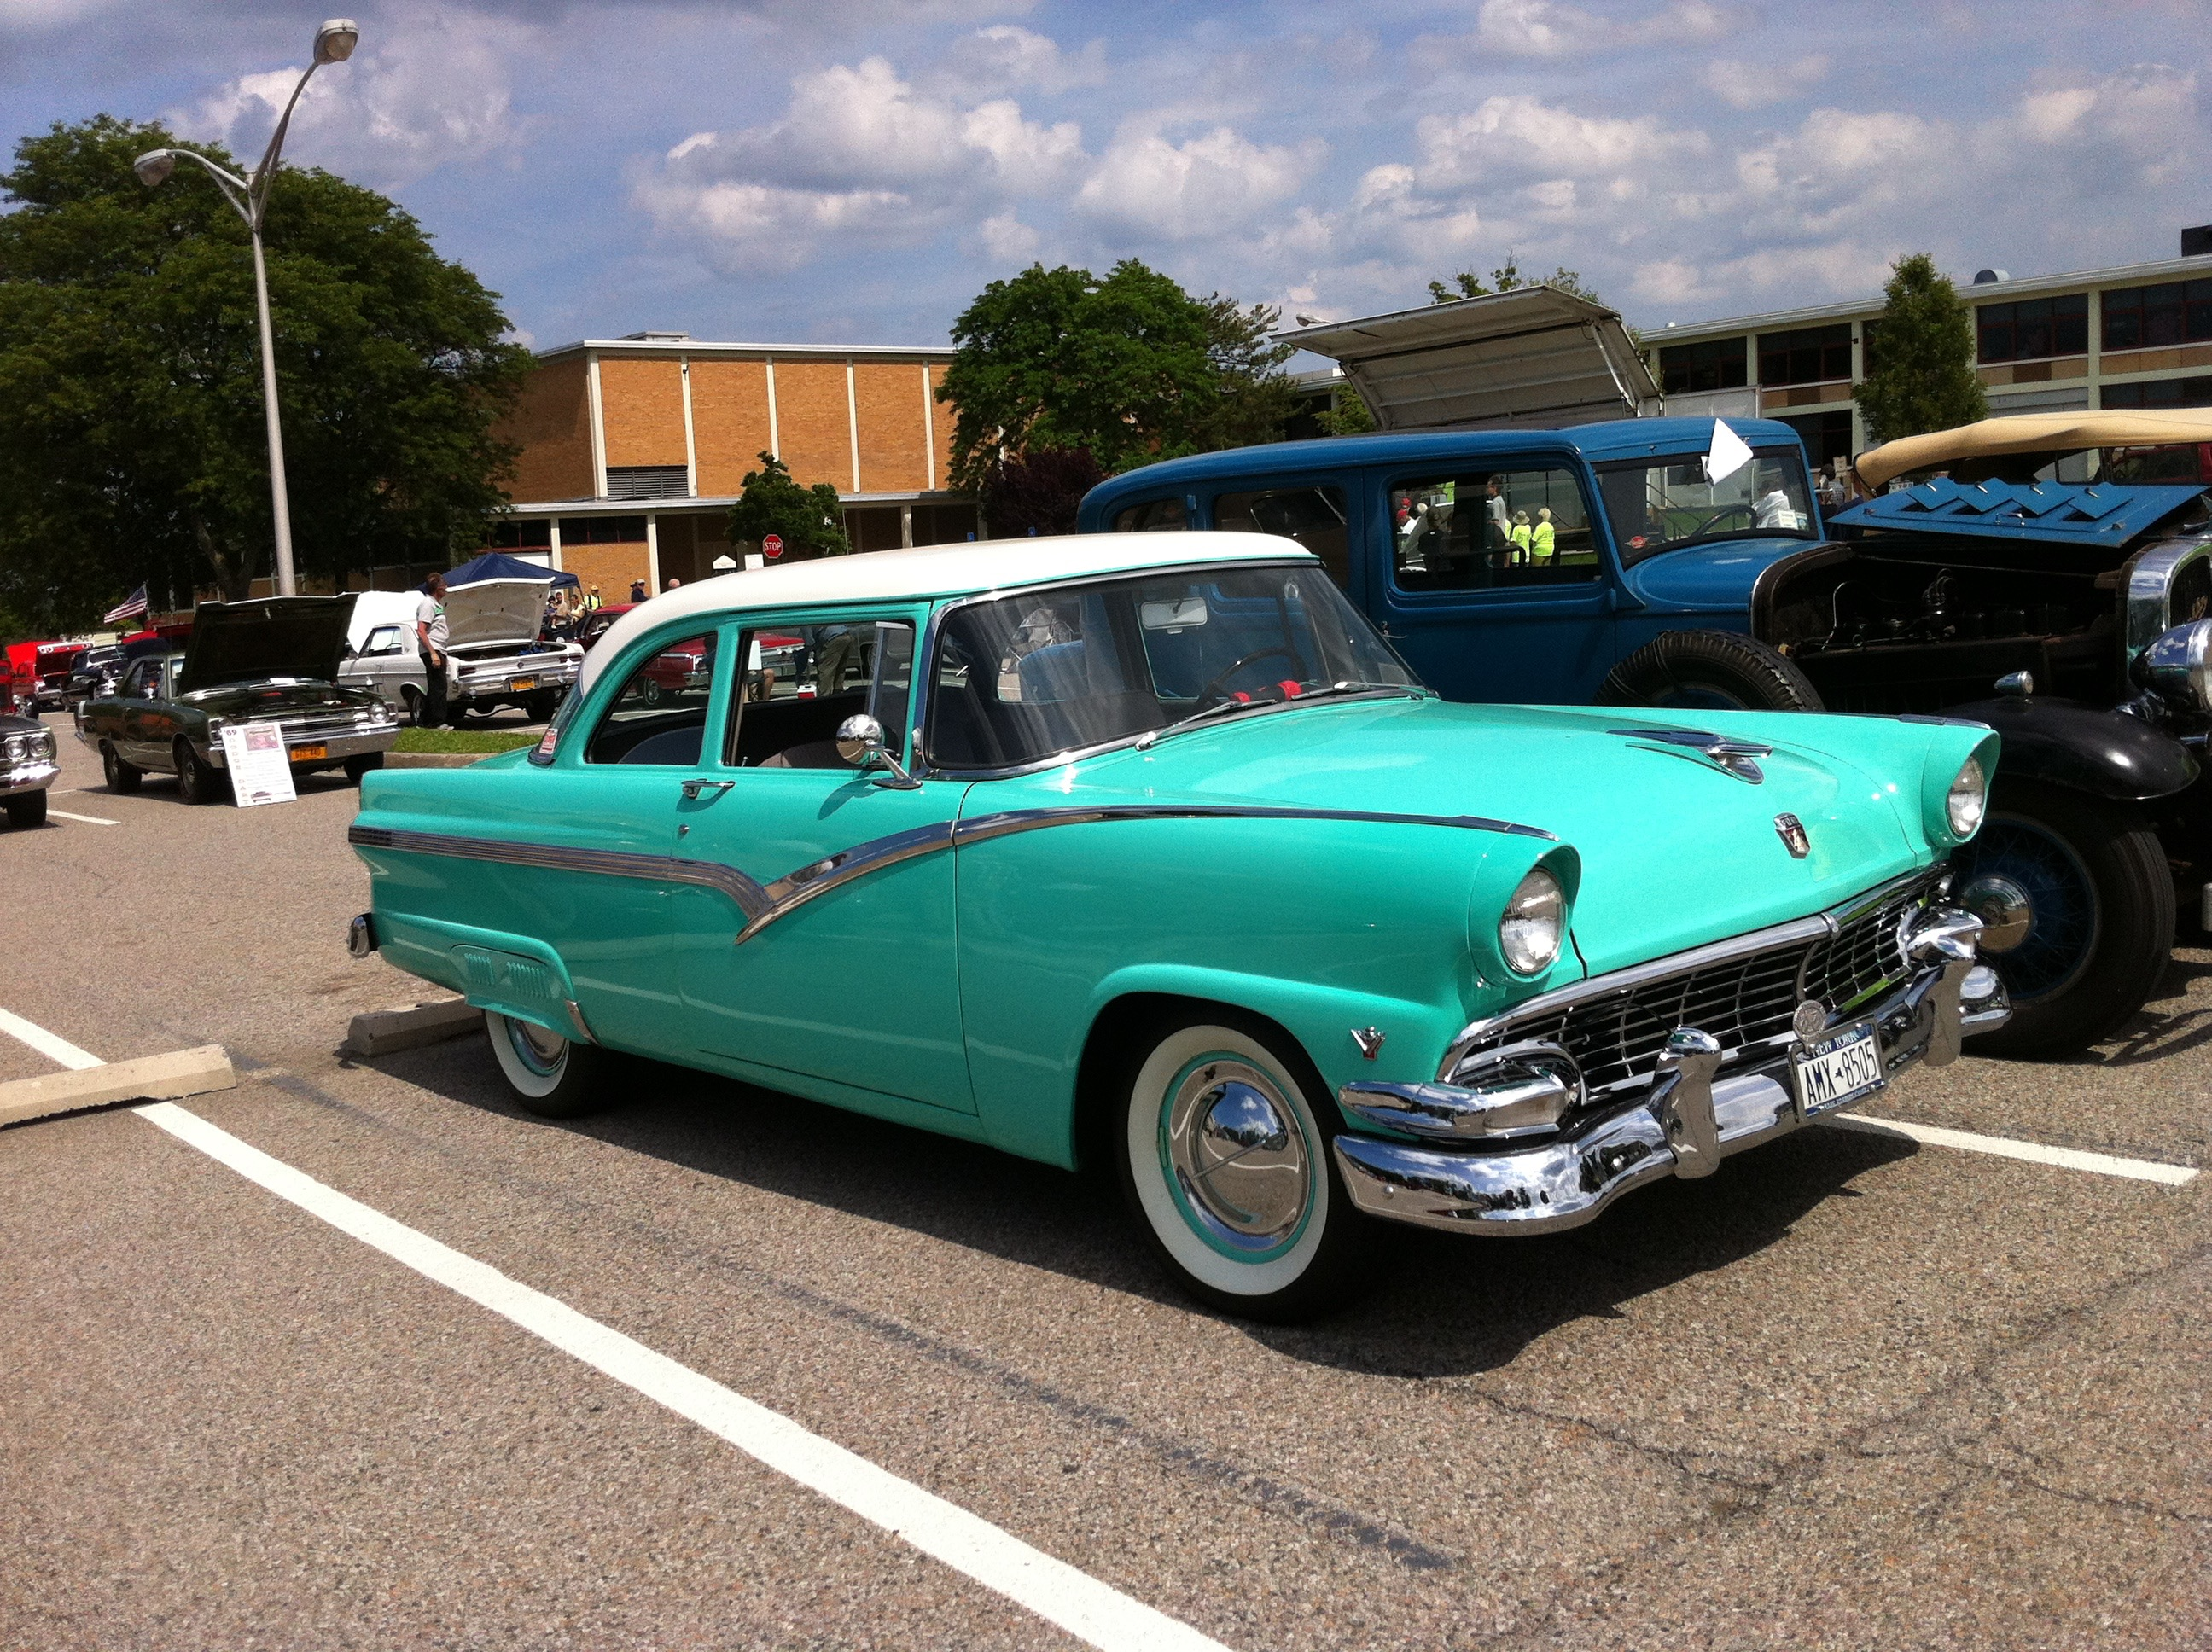 Car Show Lead East 2017 In Parsippany Nj 07054 On Aug 30 1950s Ford Fairlane Bumper